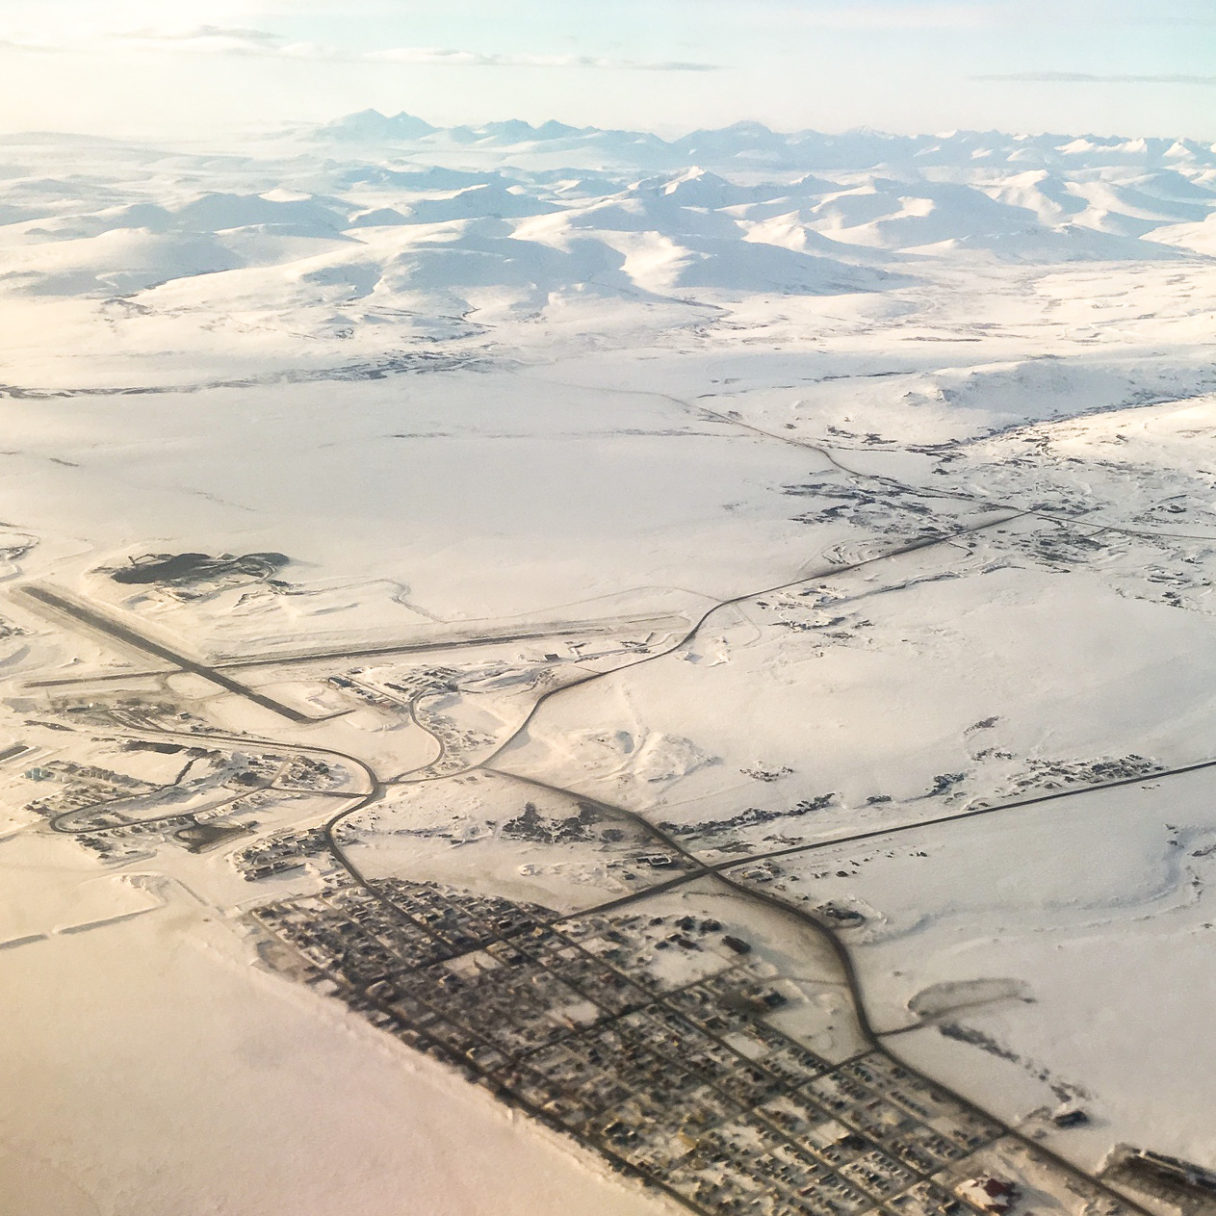 An aerial view of Nome, Alaska, and the surrounding countryside.